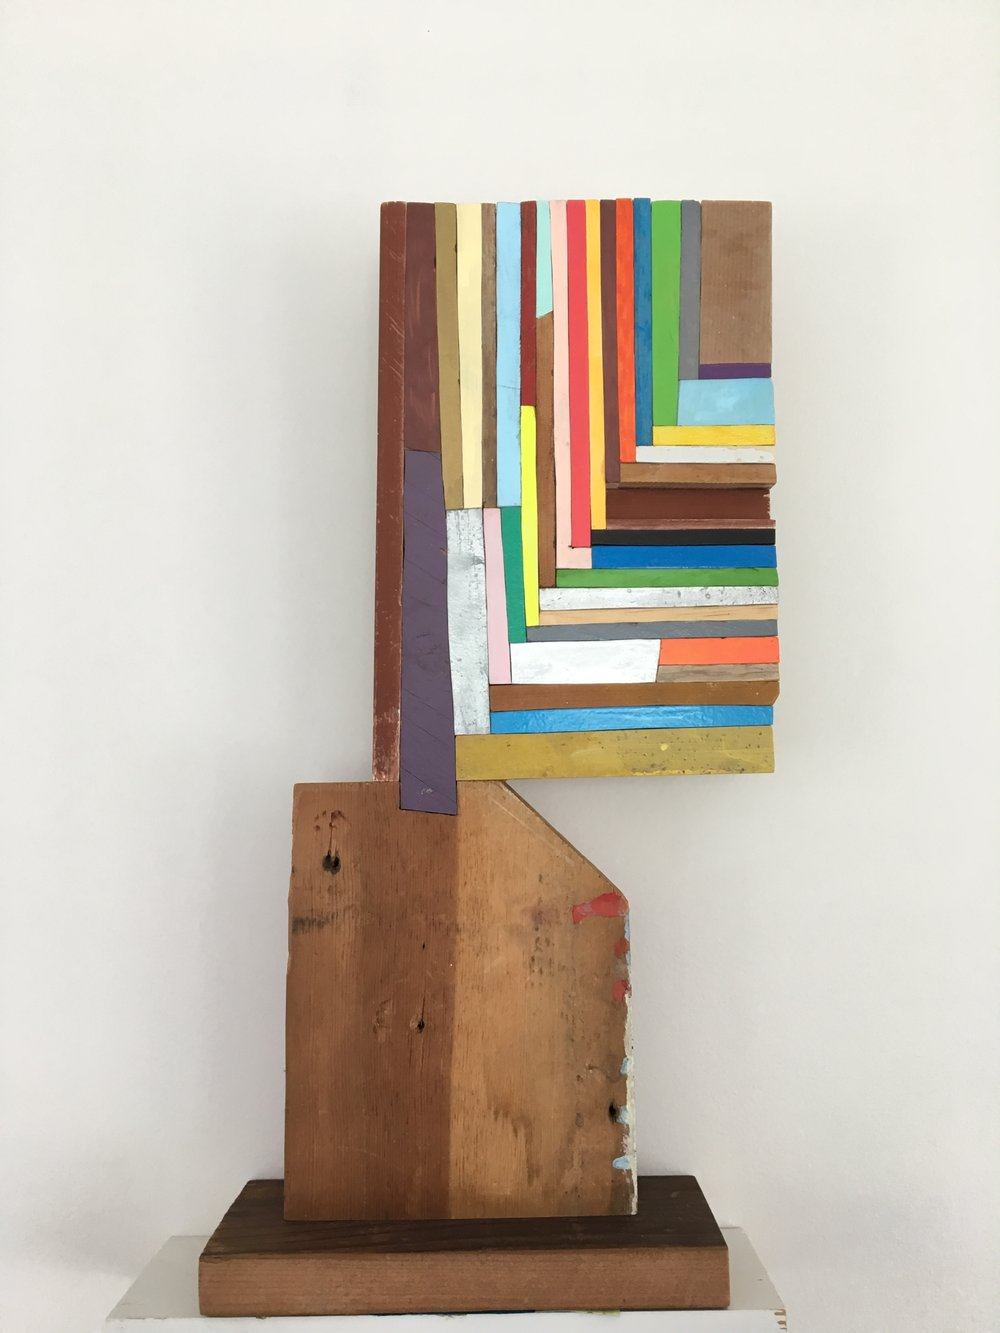 "here i am, 2018, 18"" x 8"" x 3"" wood, paint, glue $1,500"